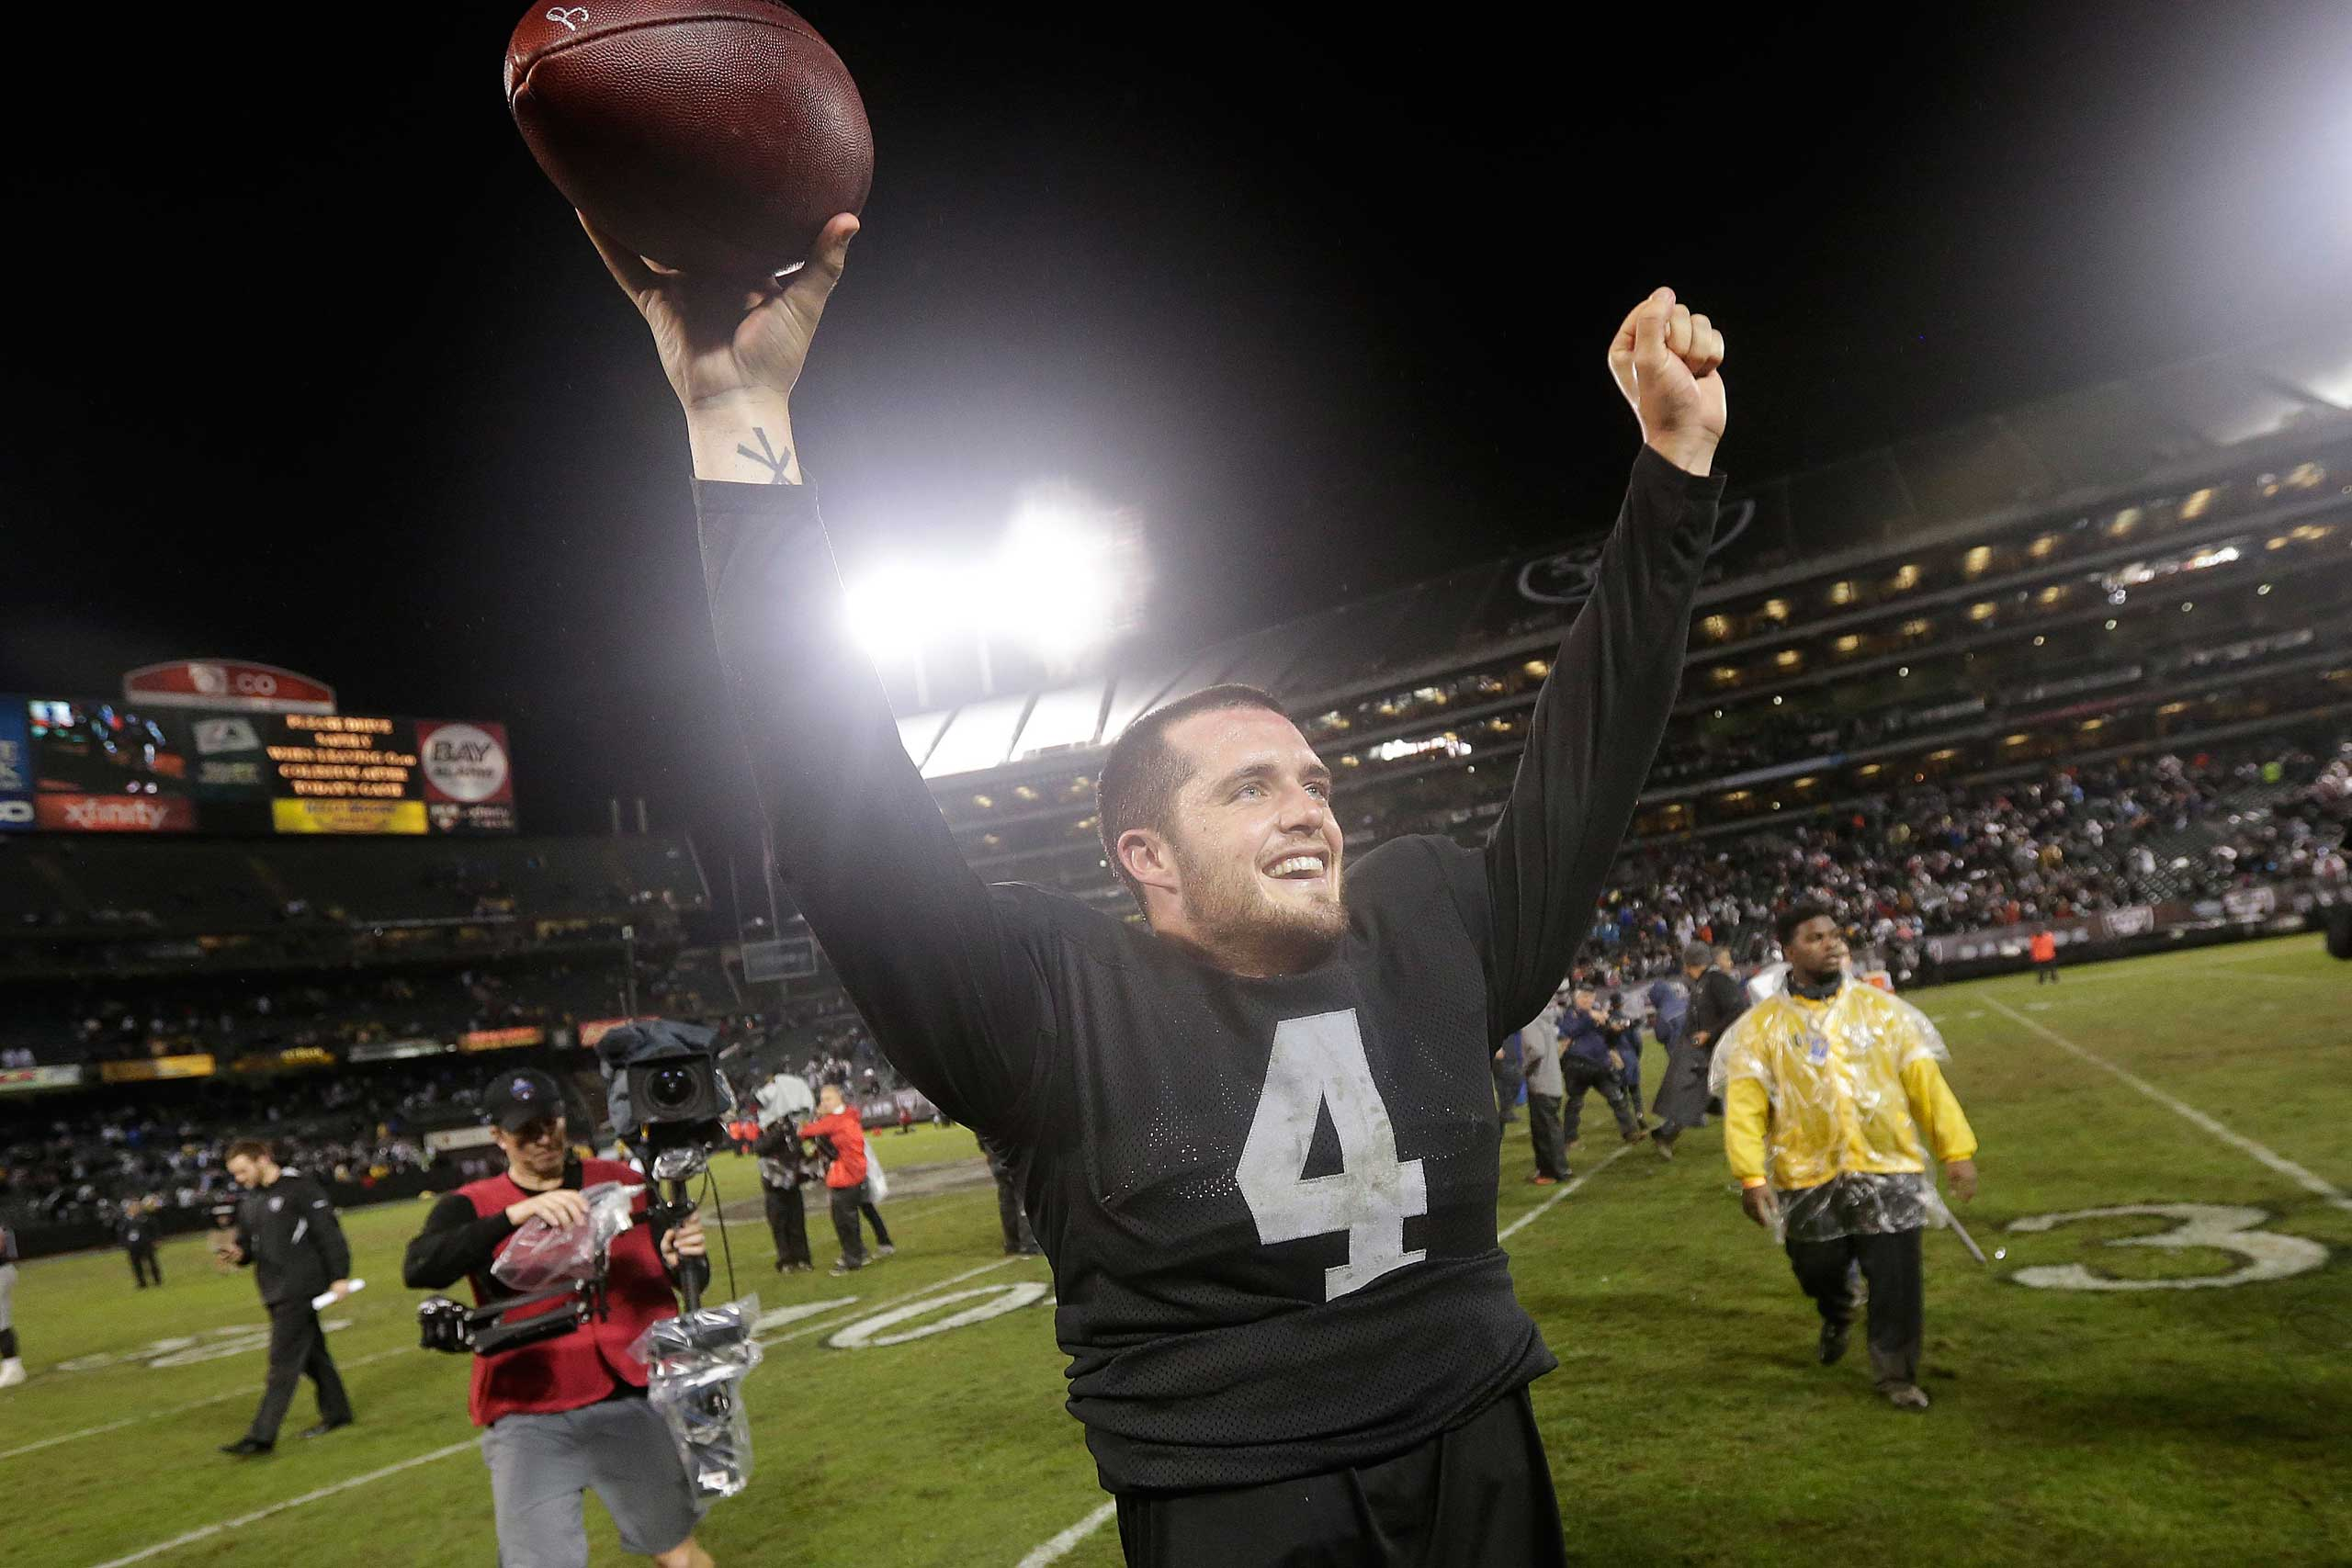 Oakland Raiders quarterback Derek Carr celebrates after the Raiders defeated the Kansas City Chiefs 24-20 in an NFL football game in Oakland, Calif., Nov. 20, 2014.